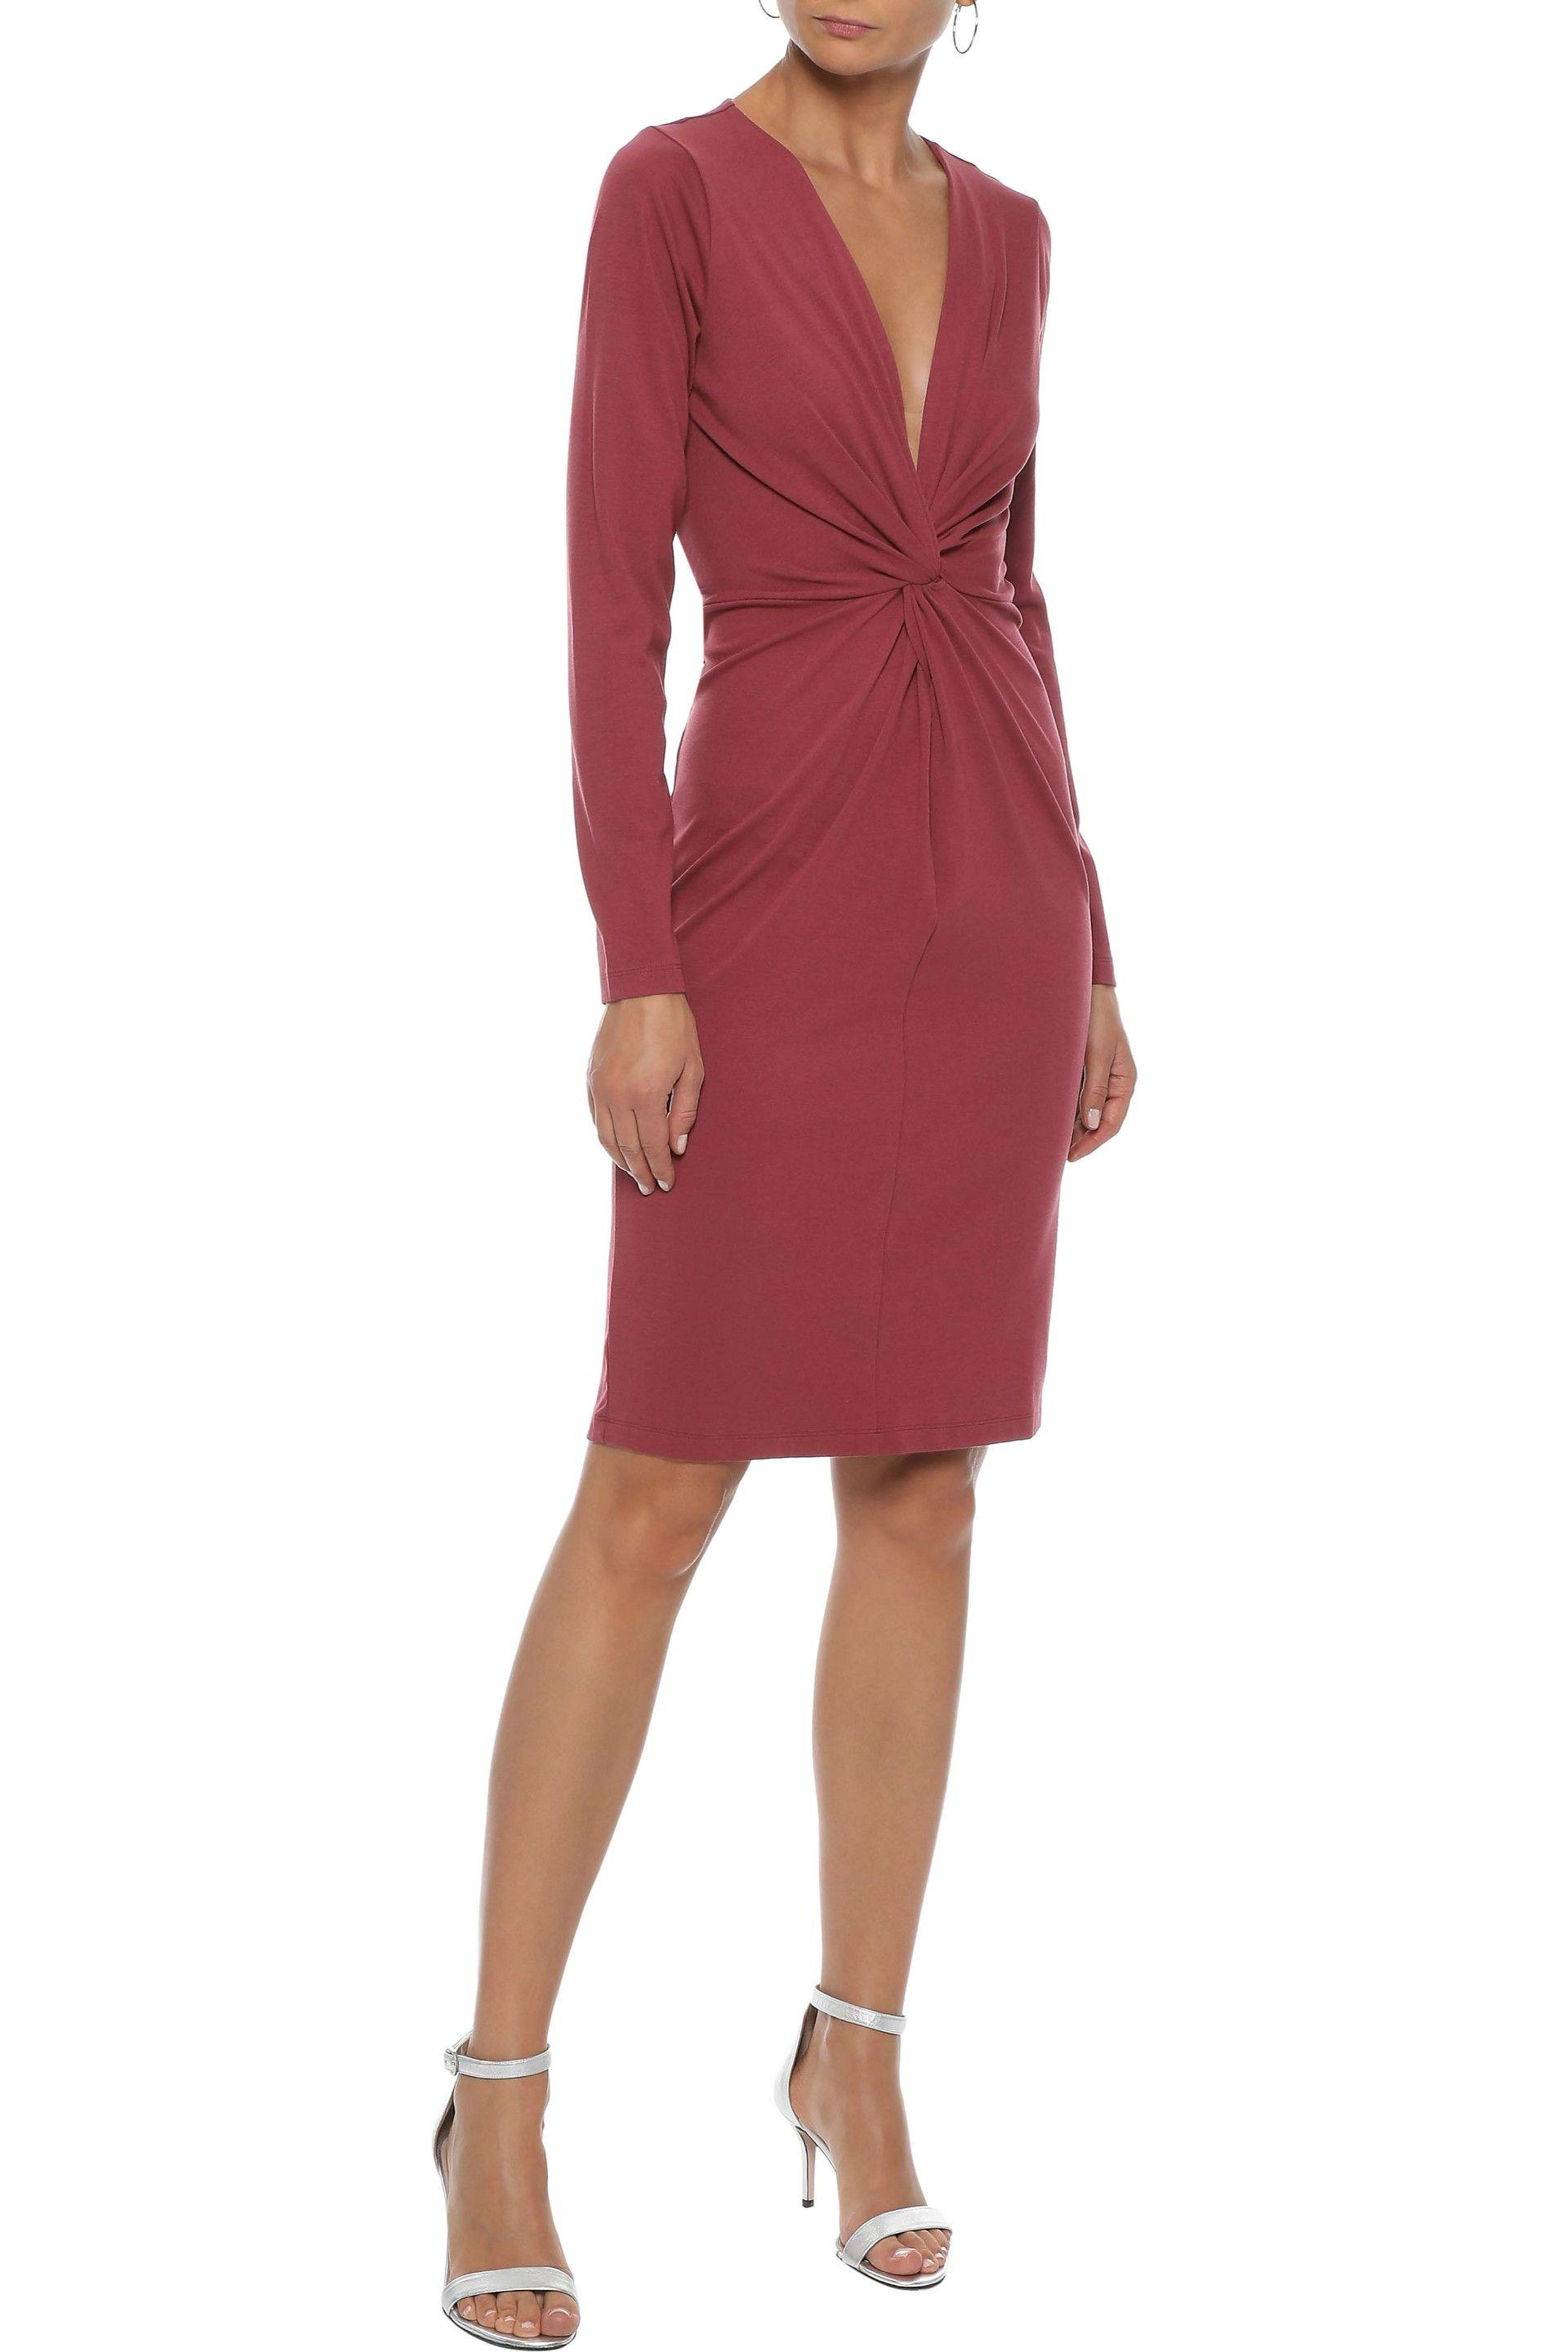 f16bd7f9372e79 Iris   Ink Woman Linda Twist-front Stretch-jersey Dress Claret in ...